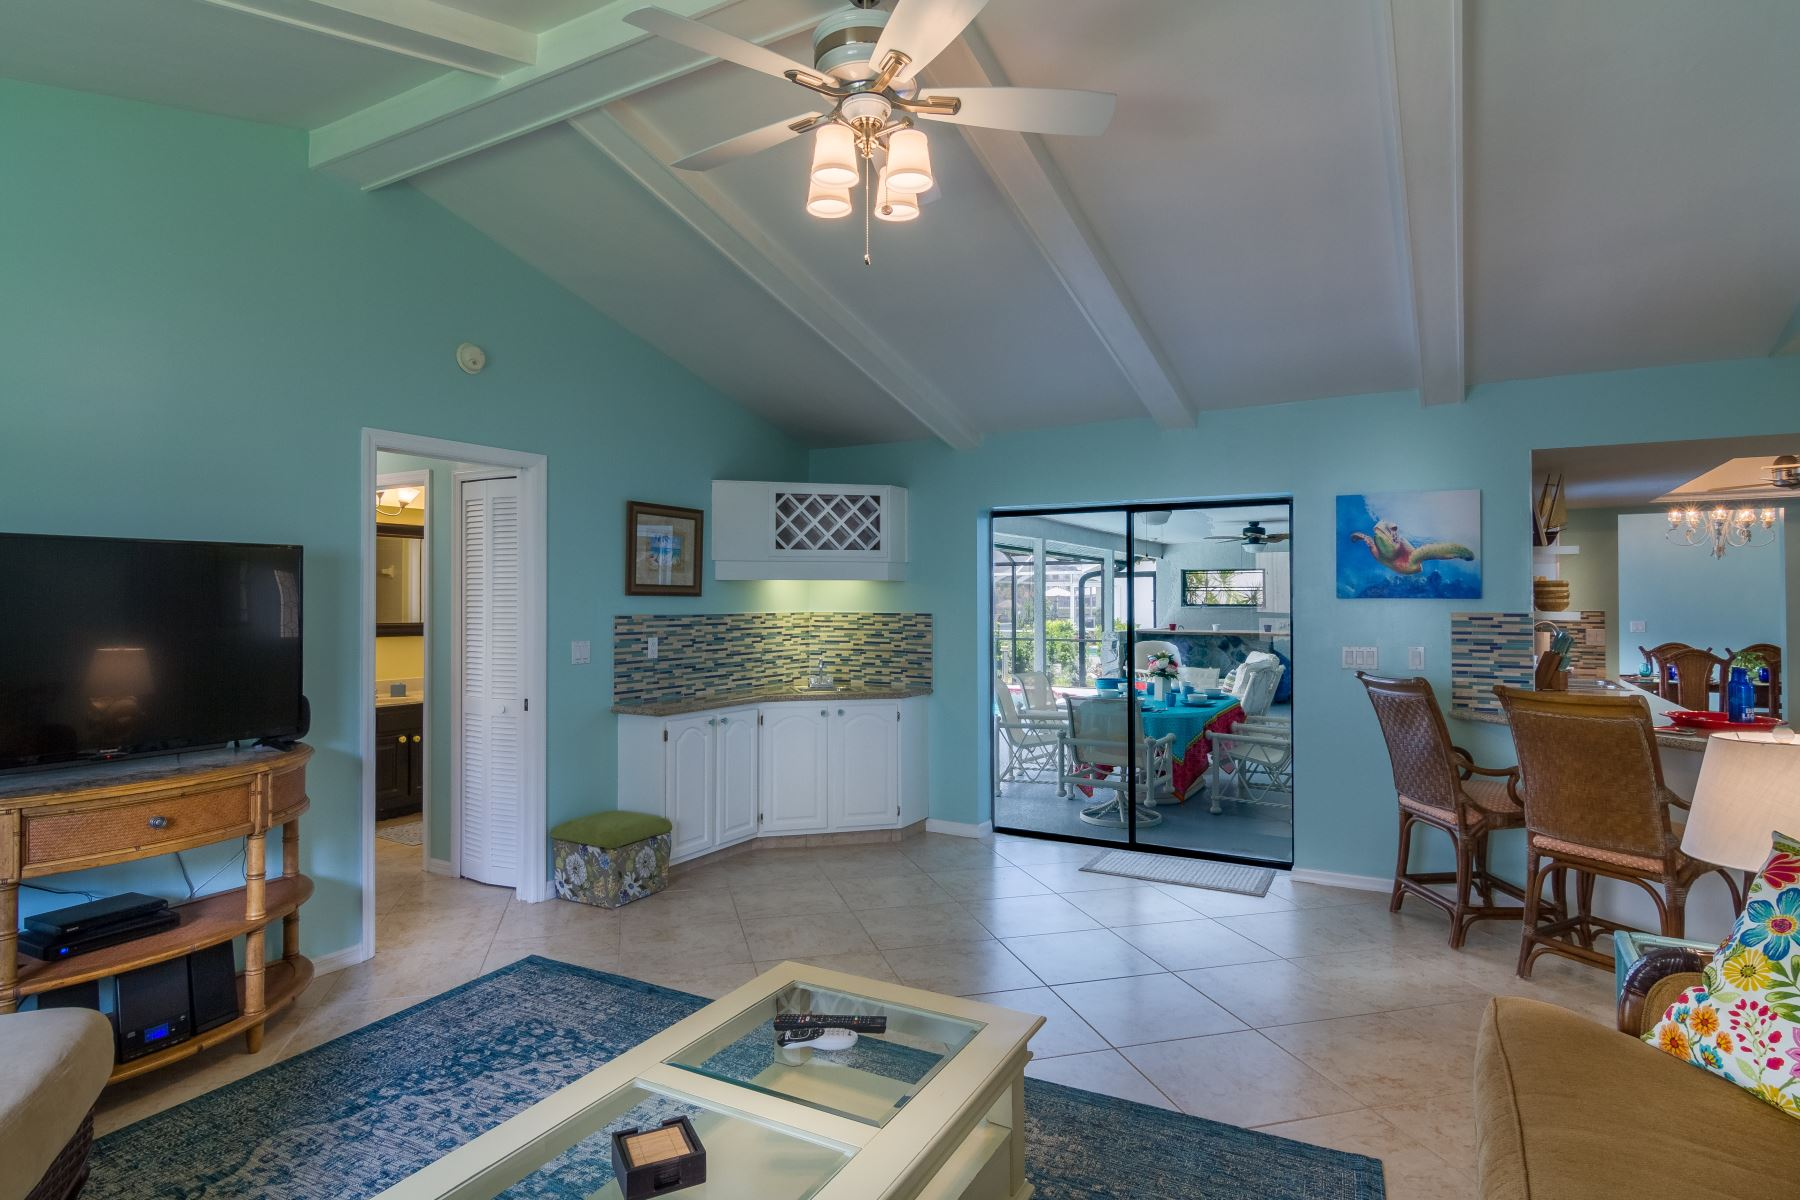 We Offer Professional Interior Decorating Services For New Construction Homes Purchases Or If You Would Like To Redecorate Your Existing Home